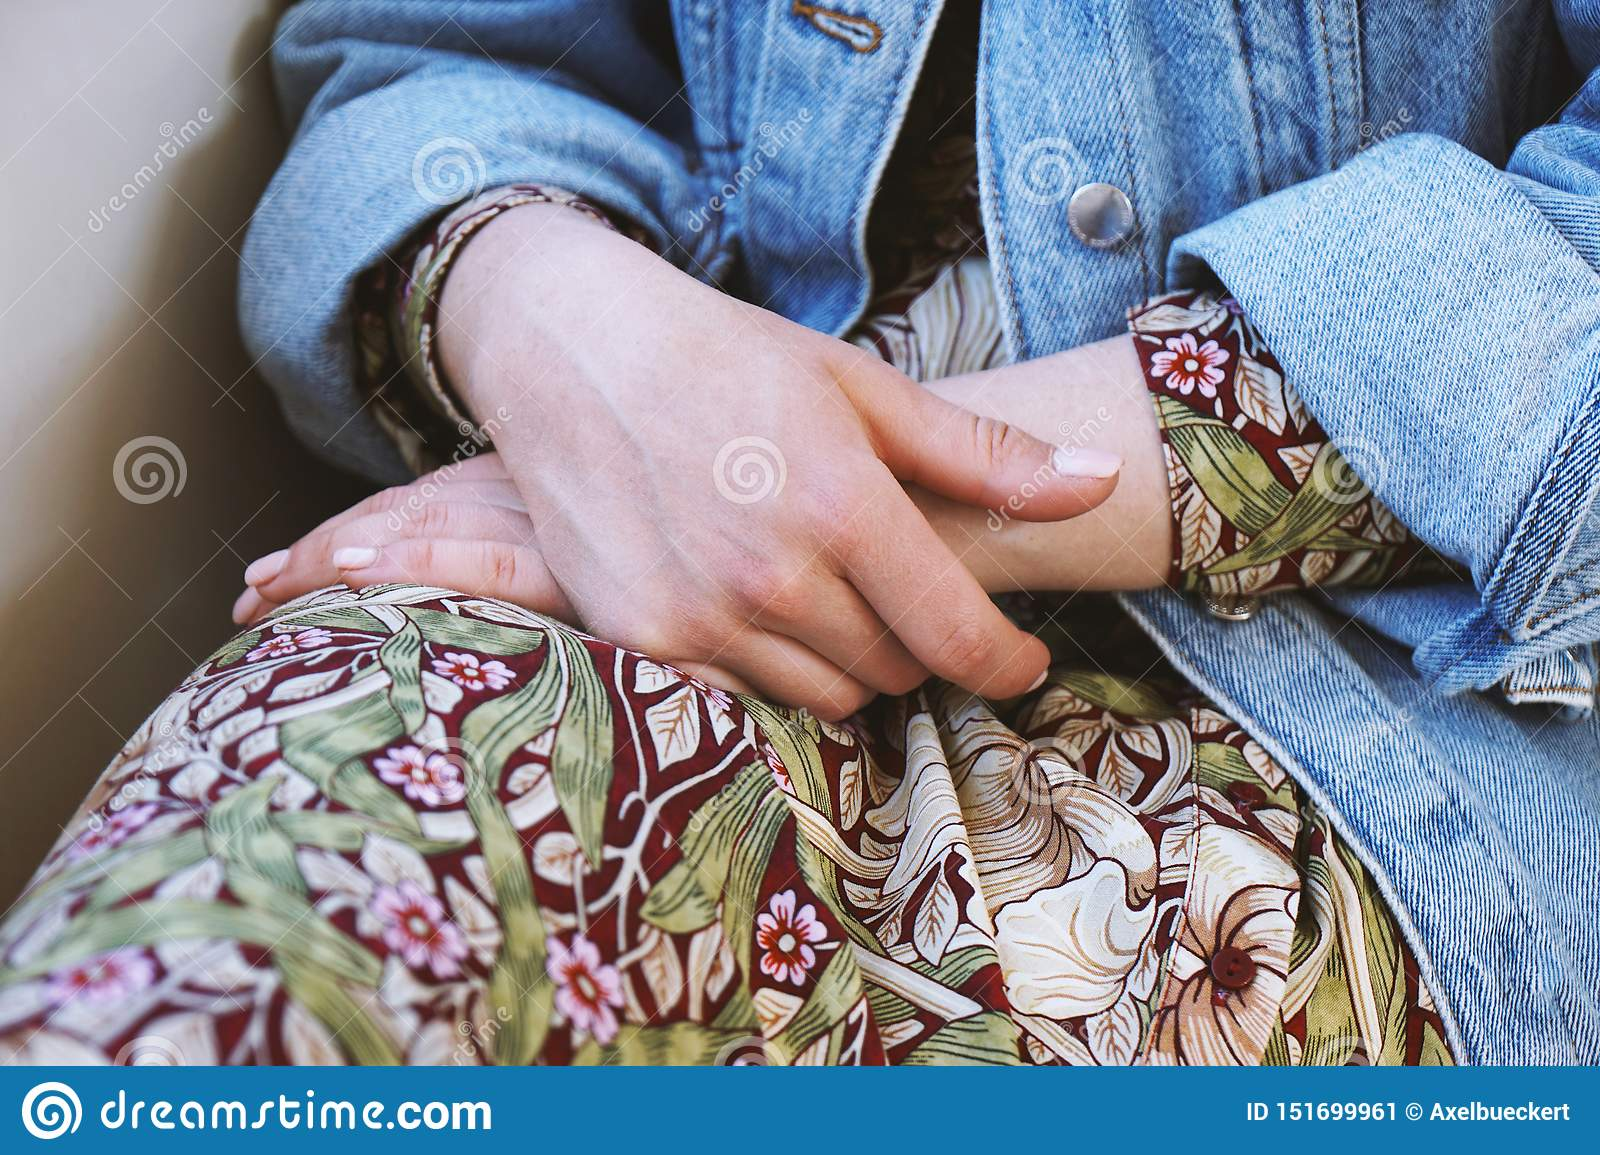 Mid section of young woman wearing denim jacket over summer dress with floral pattern